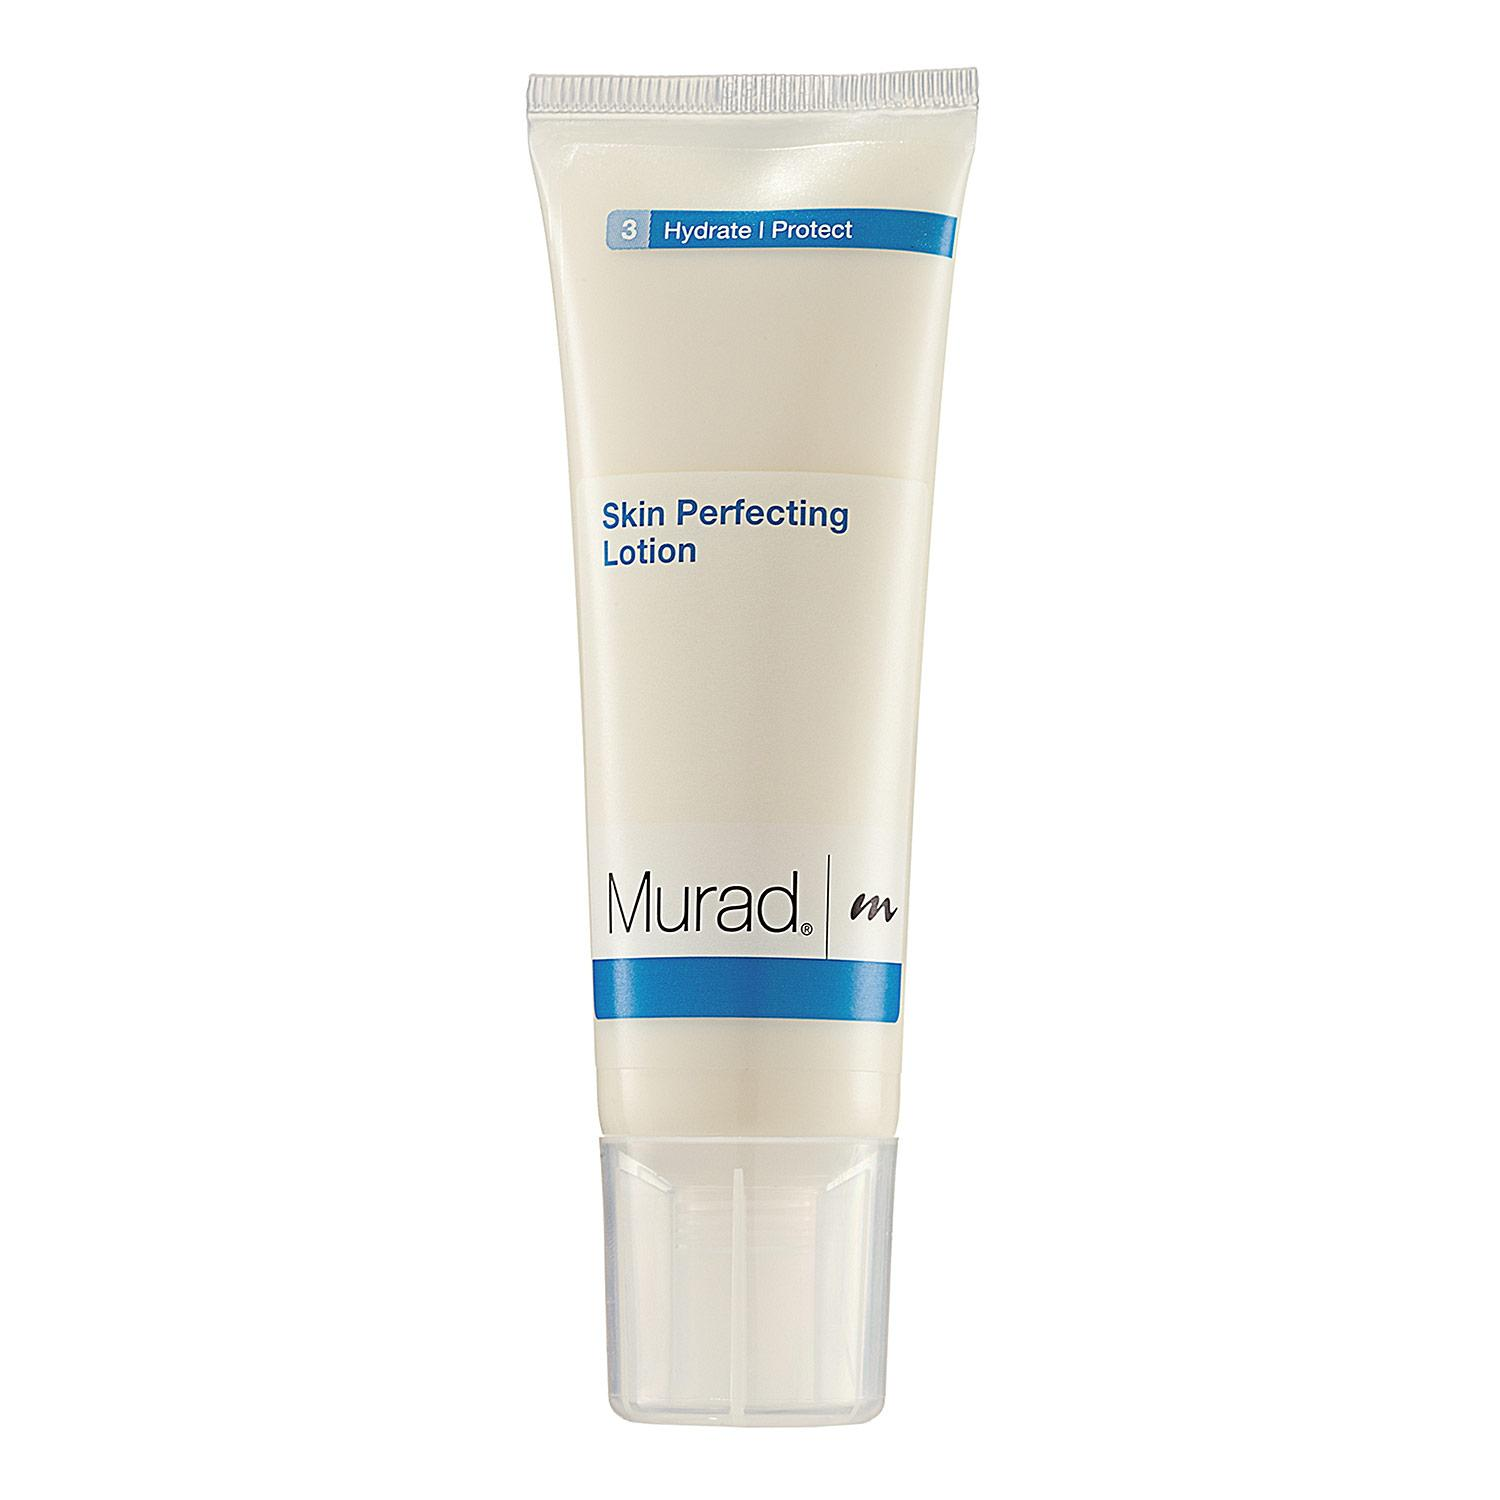 Skin Perfecting Lotion - Blemish Prone/Oily Skin